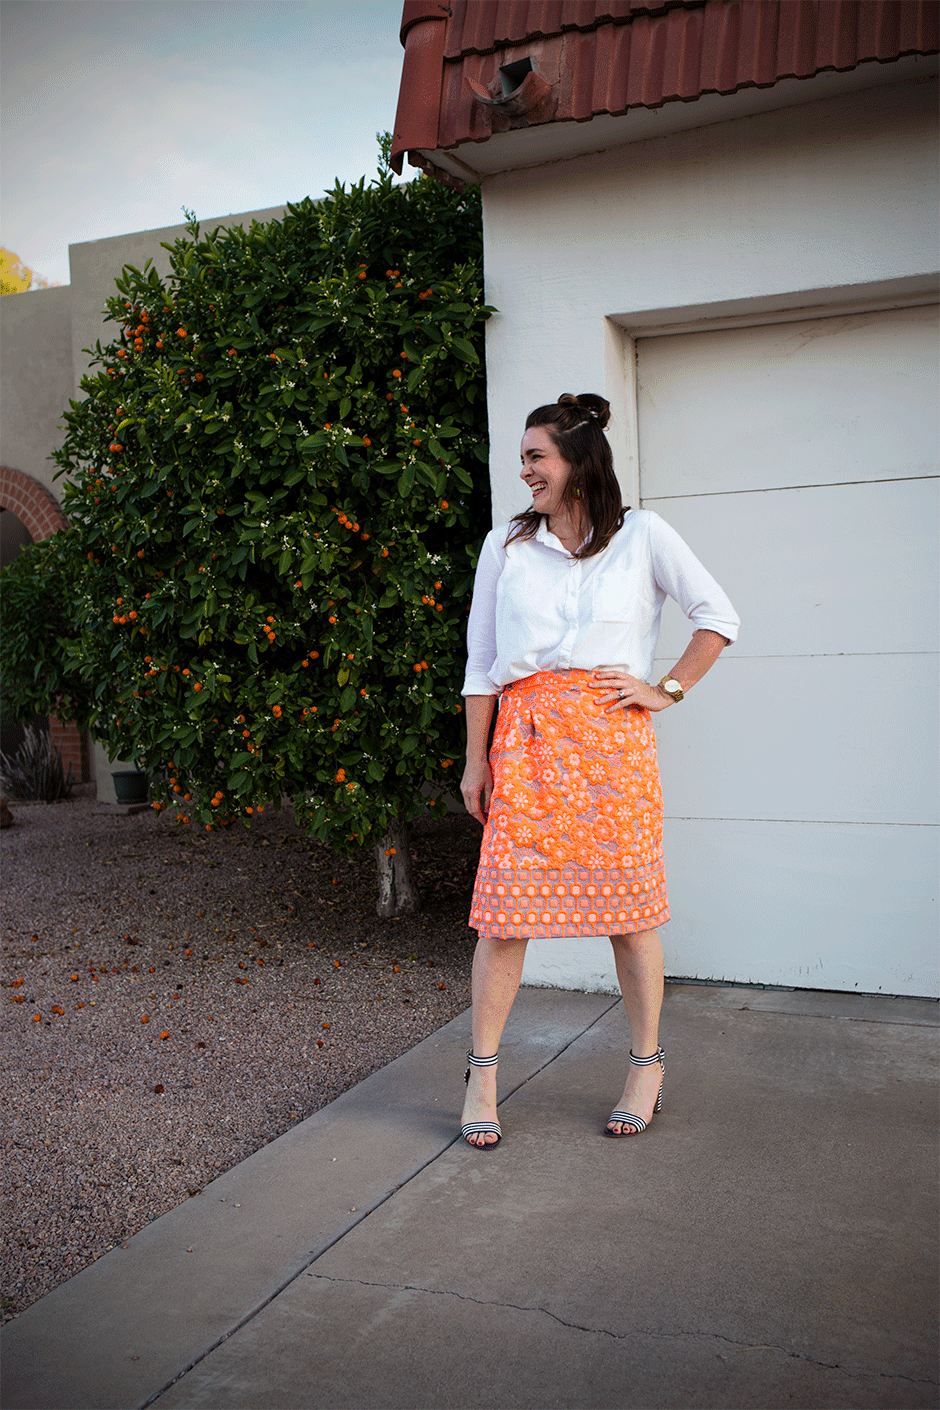 Create this DIY wrap skirt with some floral fabric for spring or summer. The perfect sewing project for warm weather.